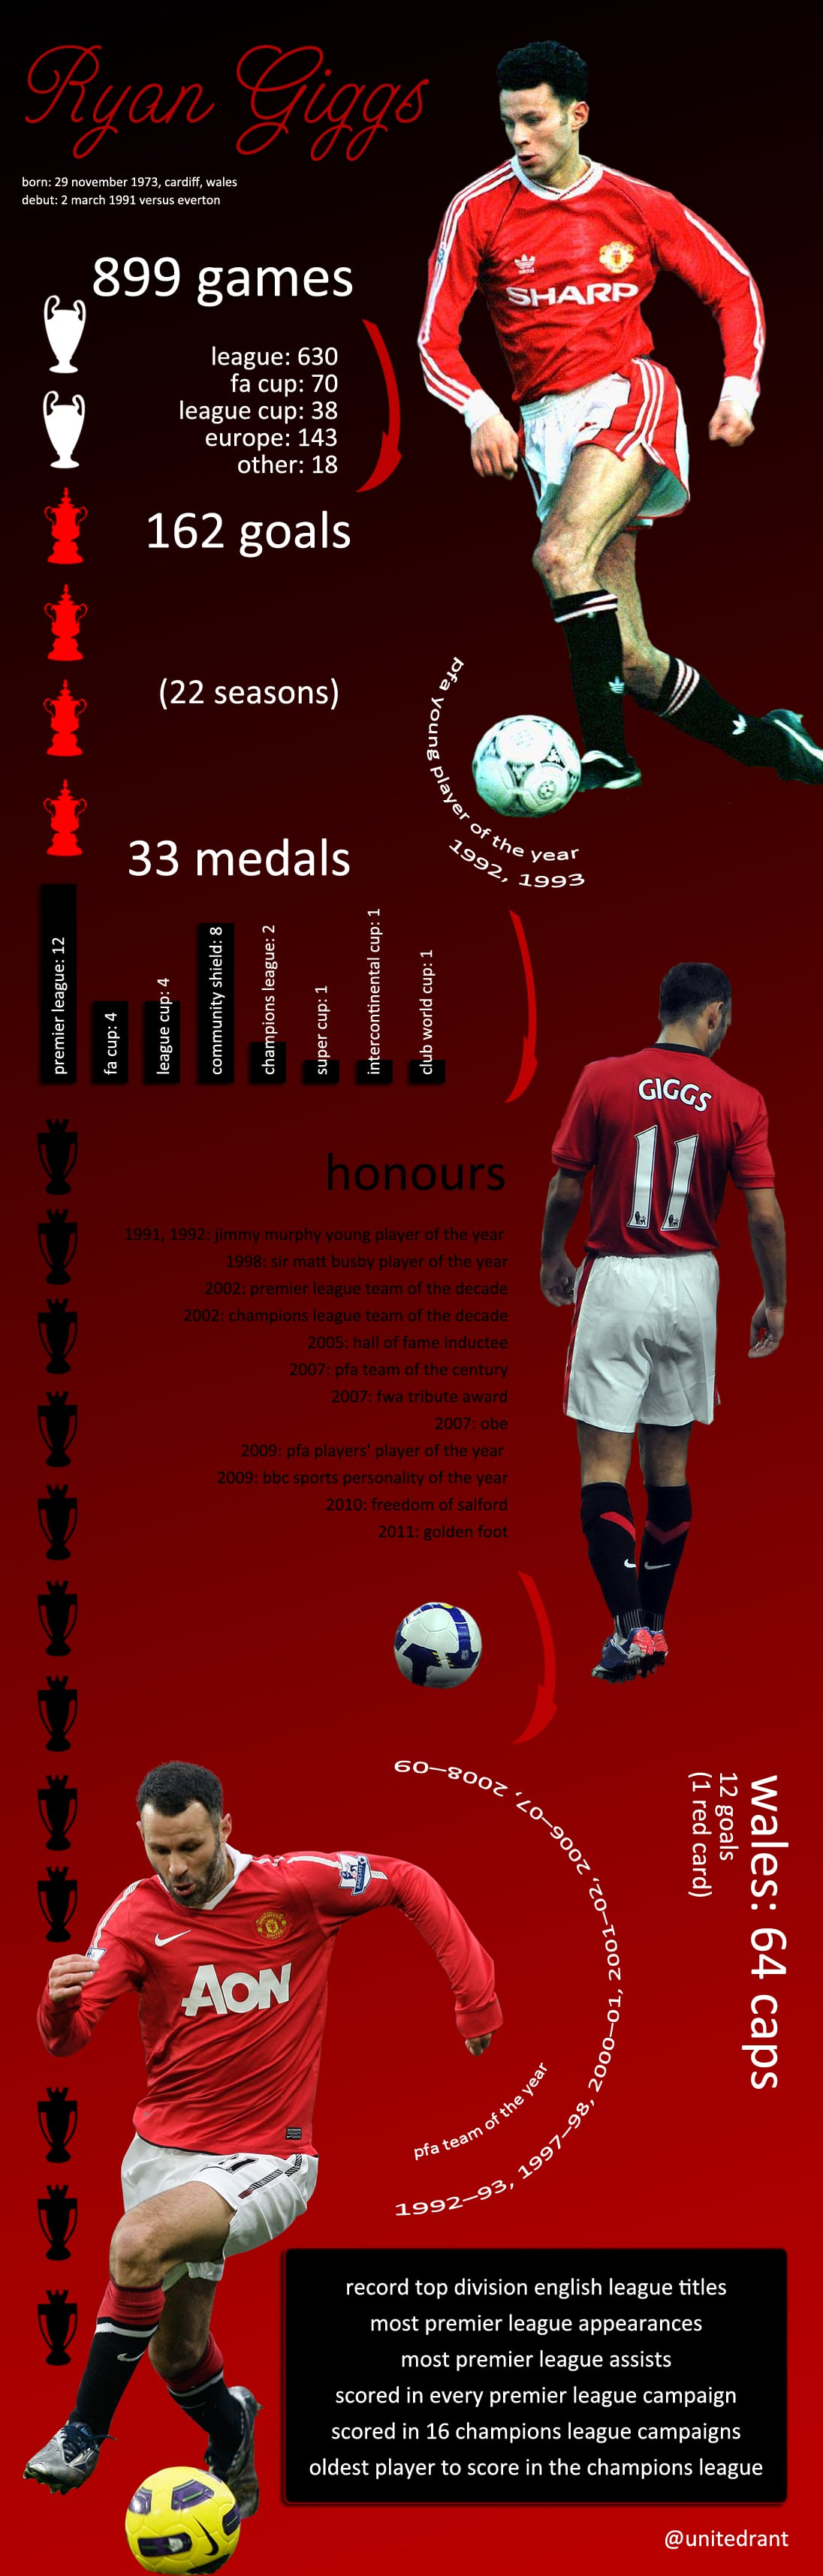 Giggs: a career in numbers